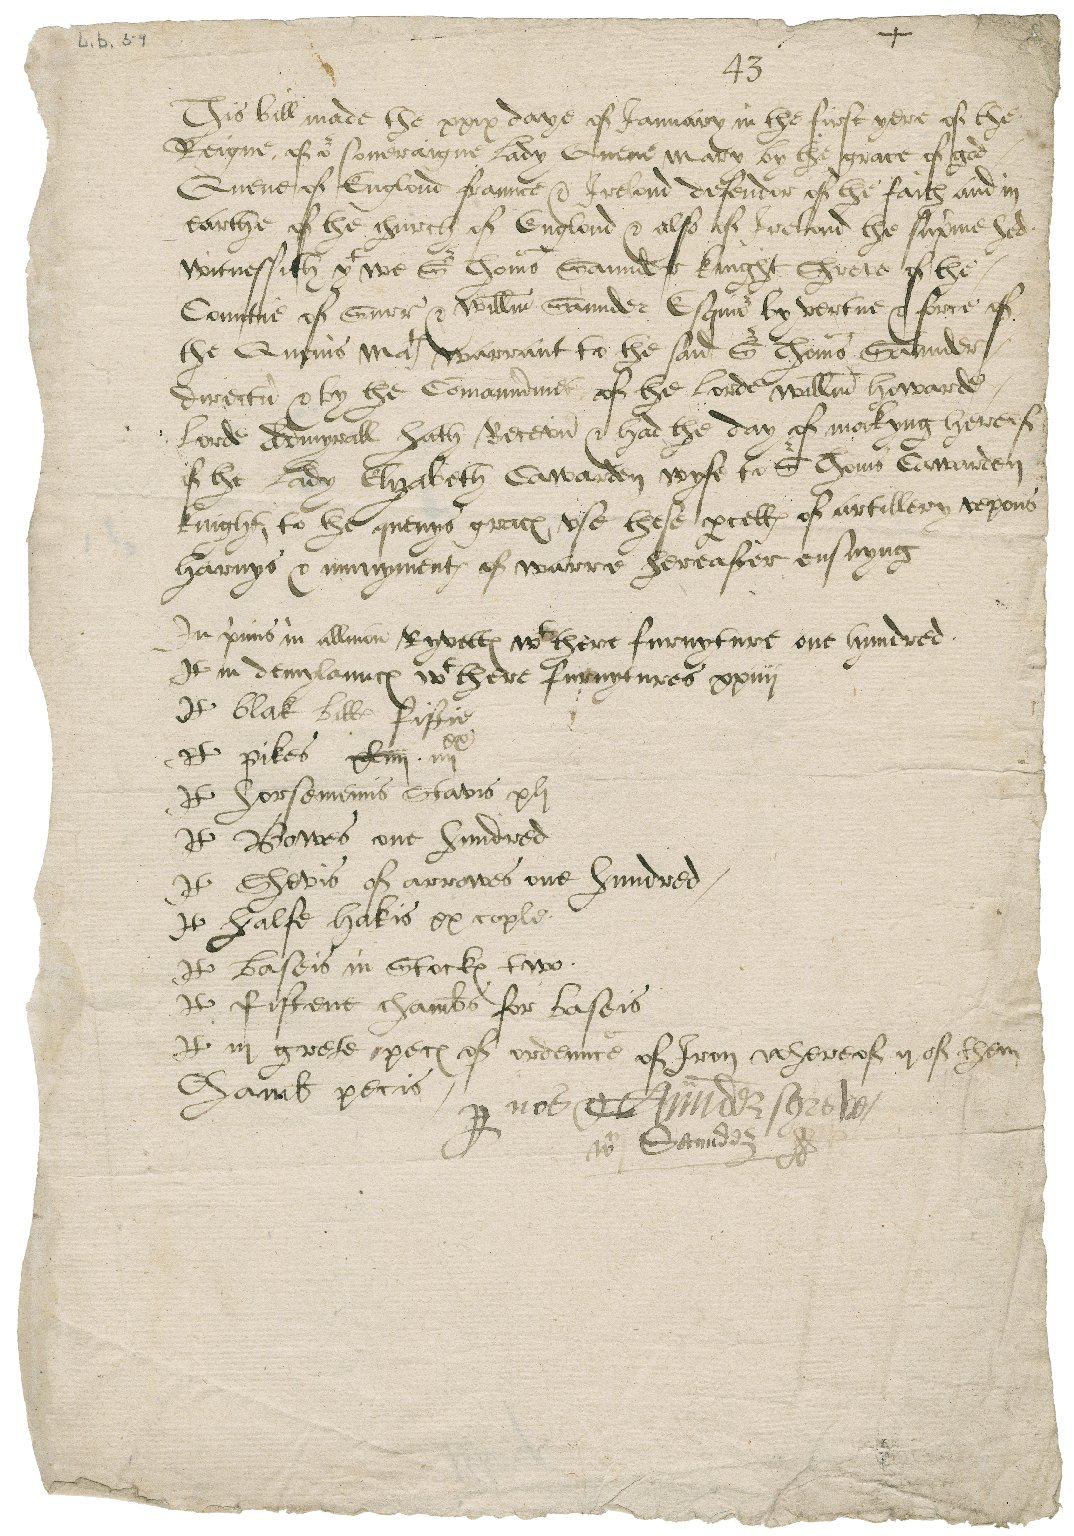 Saunders, Sir Thomas. Bill made the 29th of January 1553/54, witnessing that Sir Thomas Saunders and William Saunders by the command of Lord William Howard seized artillery and other weapons from Lady Elizabeth Cawarden wife of Sir Thomas Cawarden.